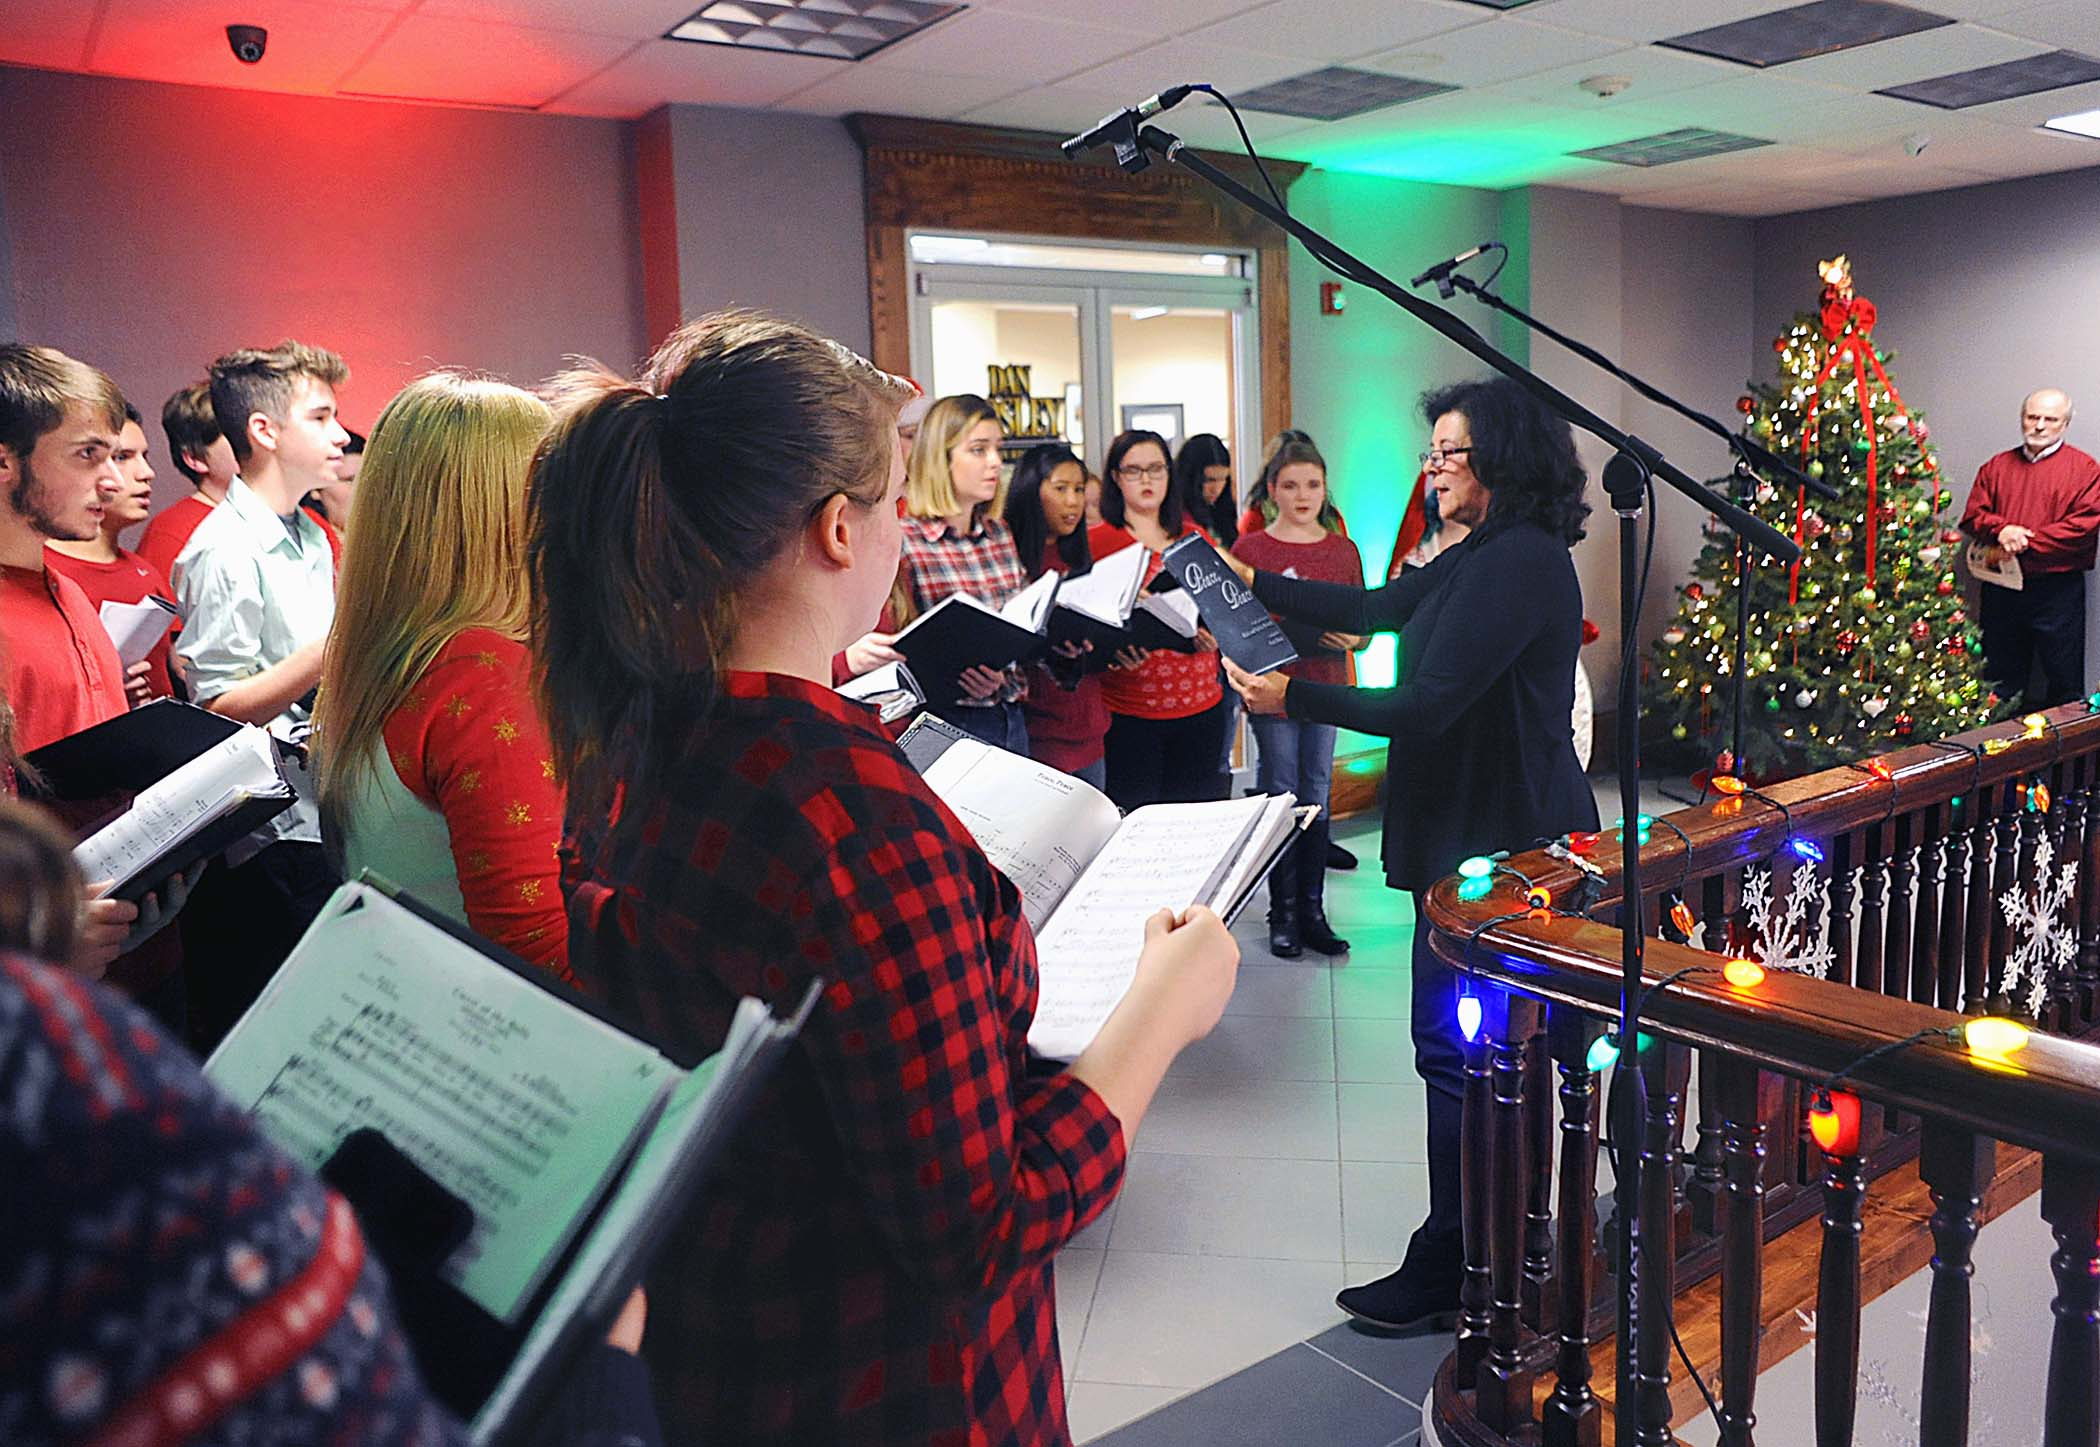 The annual Harlan County Courthouse caroling program was held Tuesday evening as groups took part in the event sponsored by the Harlan County Fiscal Court, courthouse staff and the Harlan Arts Council. One of the many groups to liven up the cold night was the Harlan County High School Choir, under the direction of Jeanne Lee.